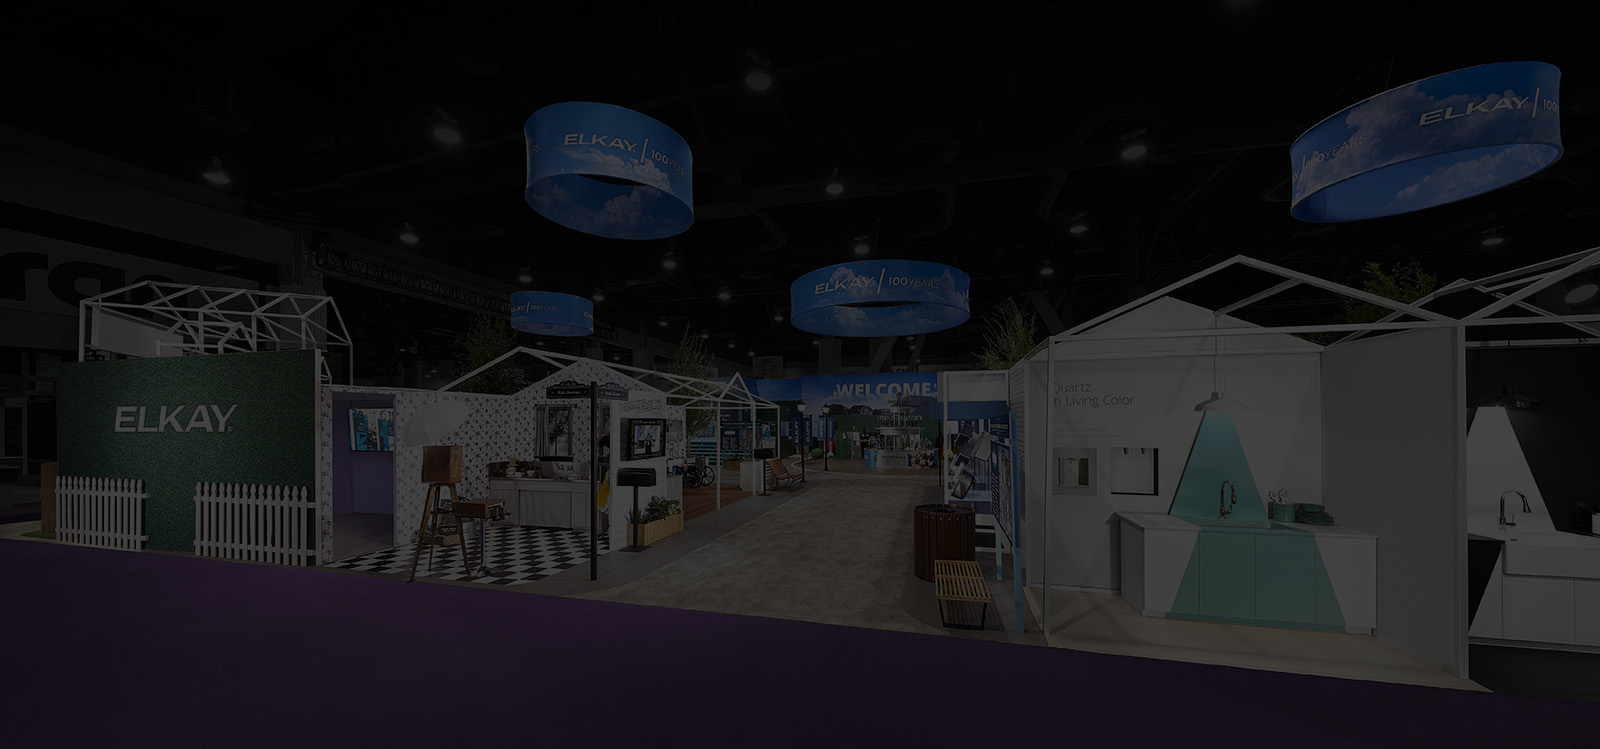 KBIS Recognizes Elkay and August Jackson with Best Large Booth Award